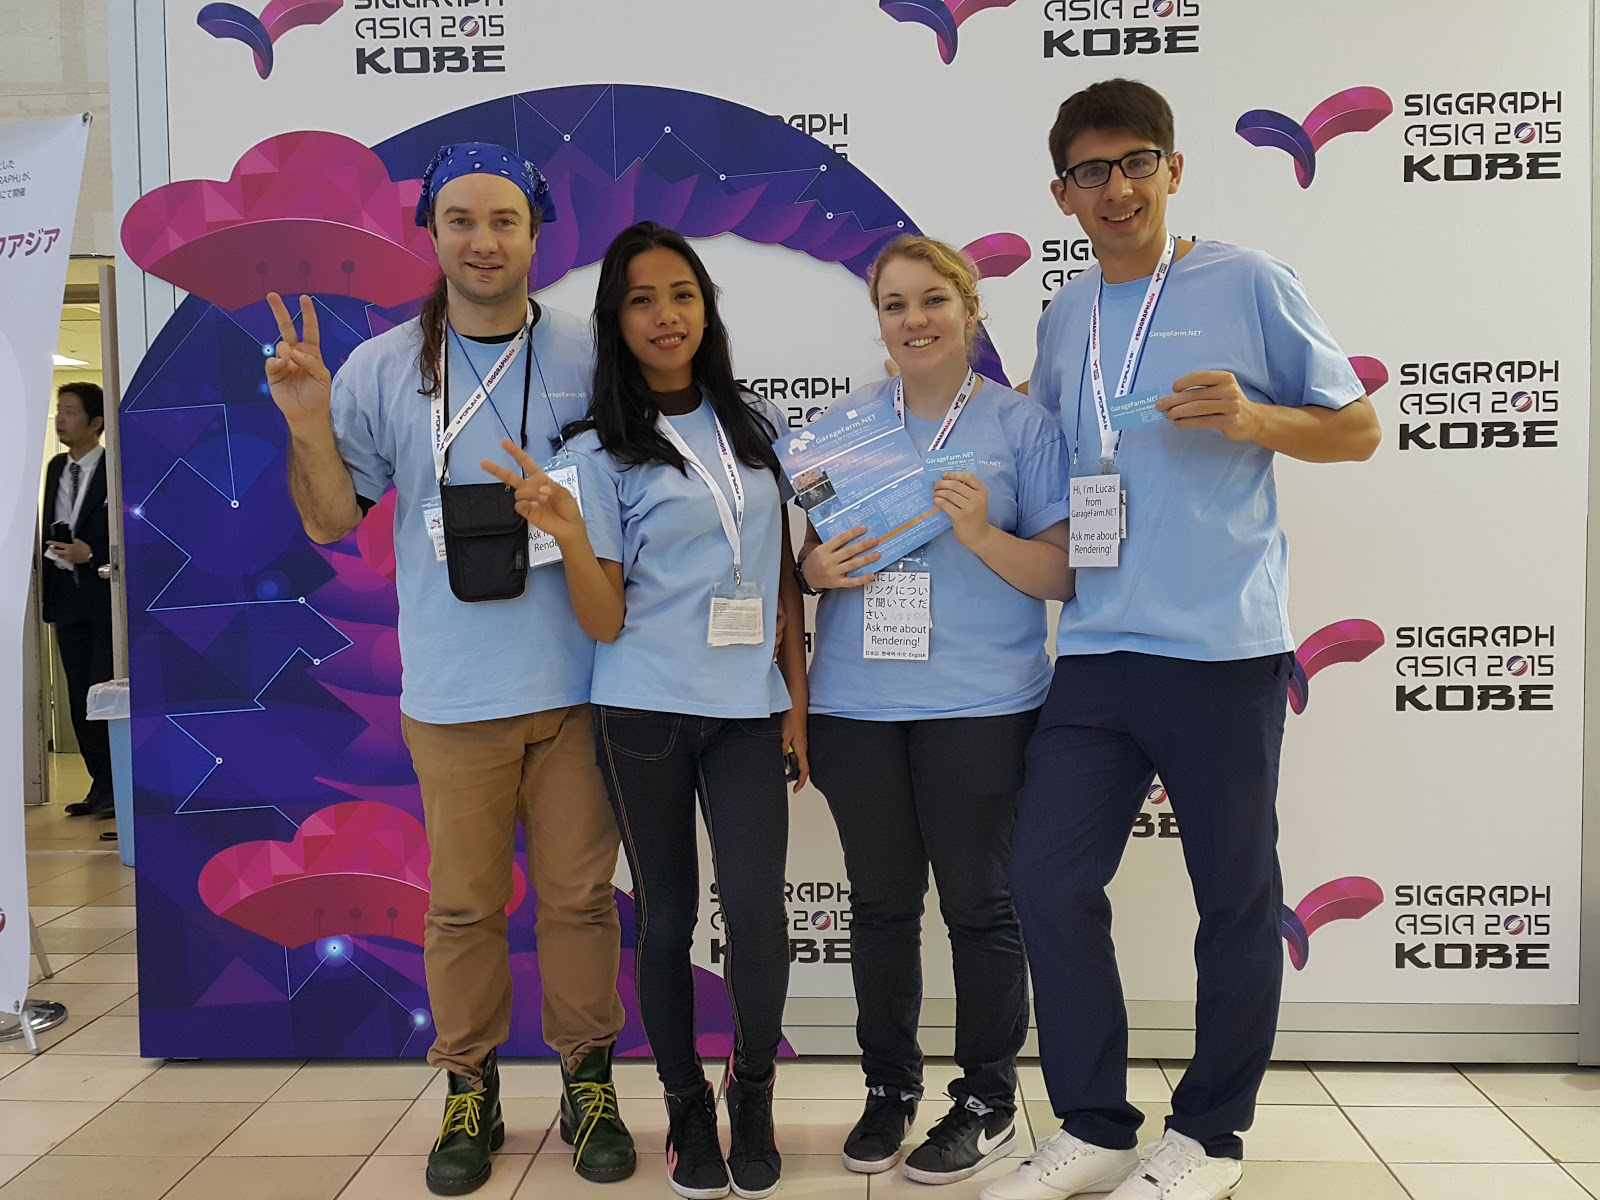 Lucas with our delegation to Siggraph Asia 2015